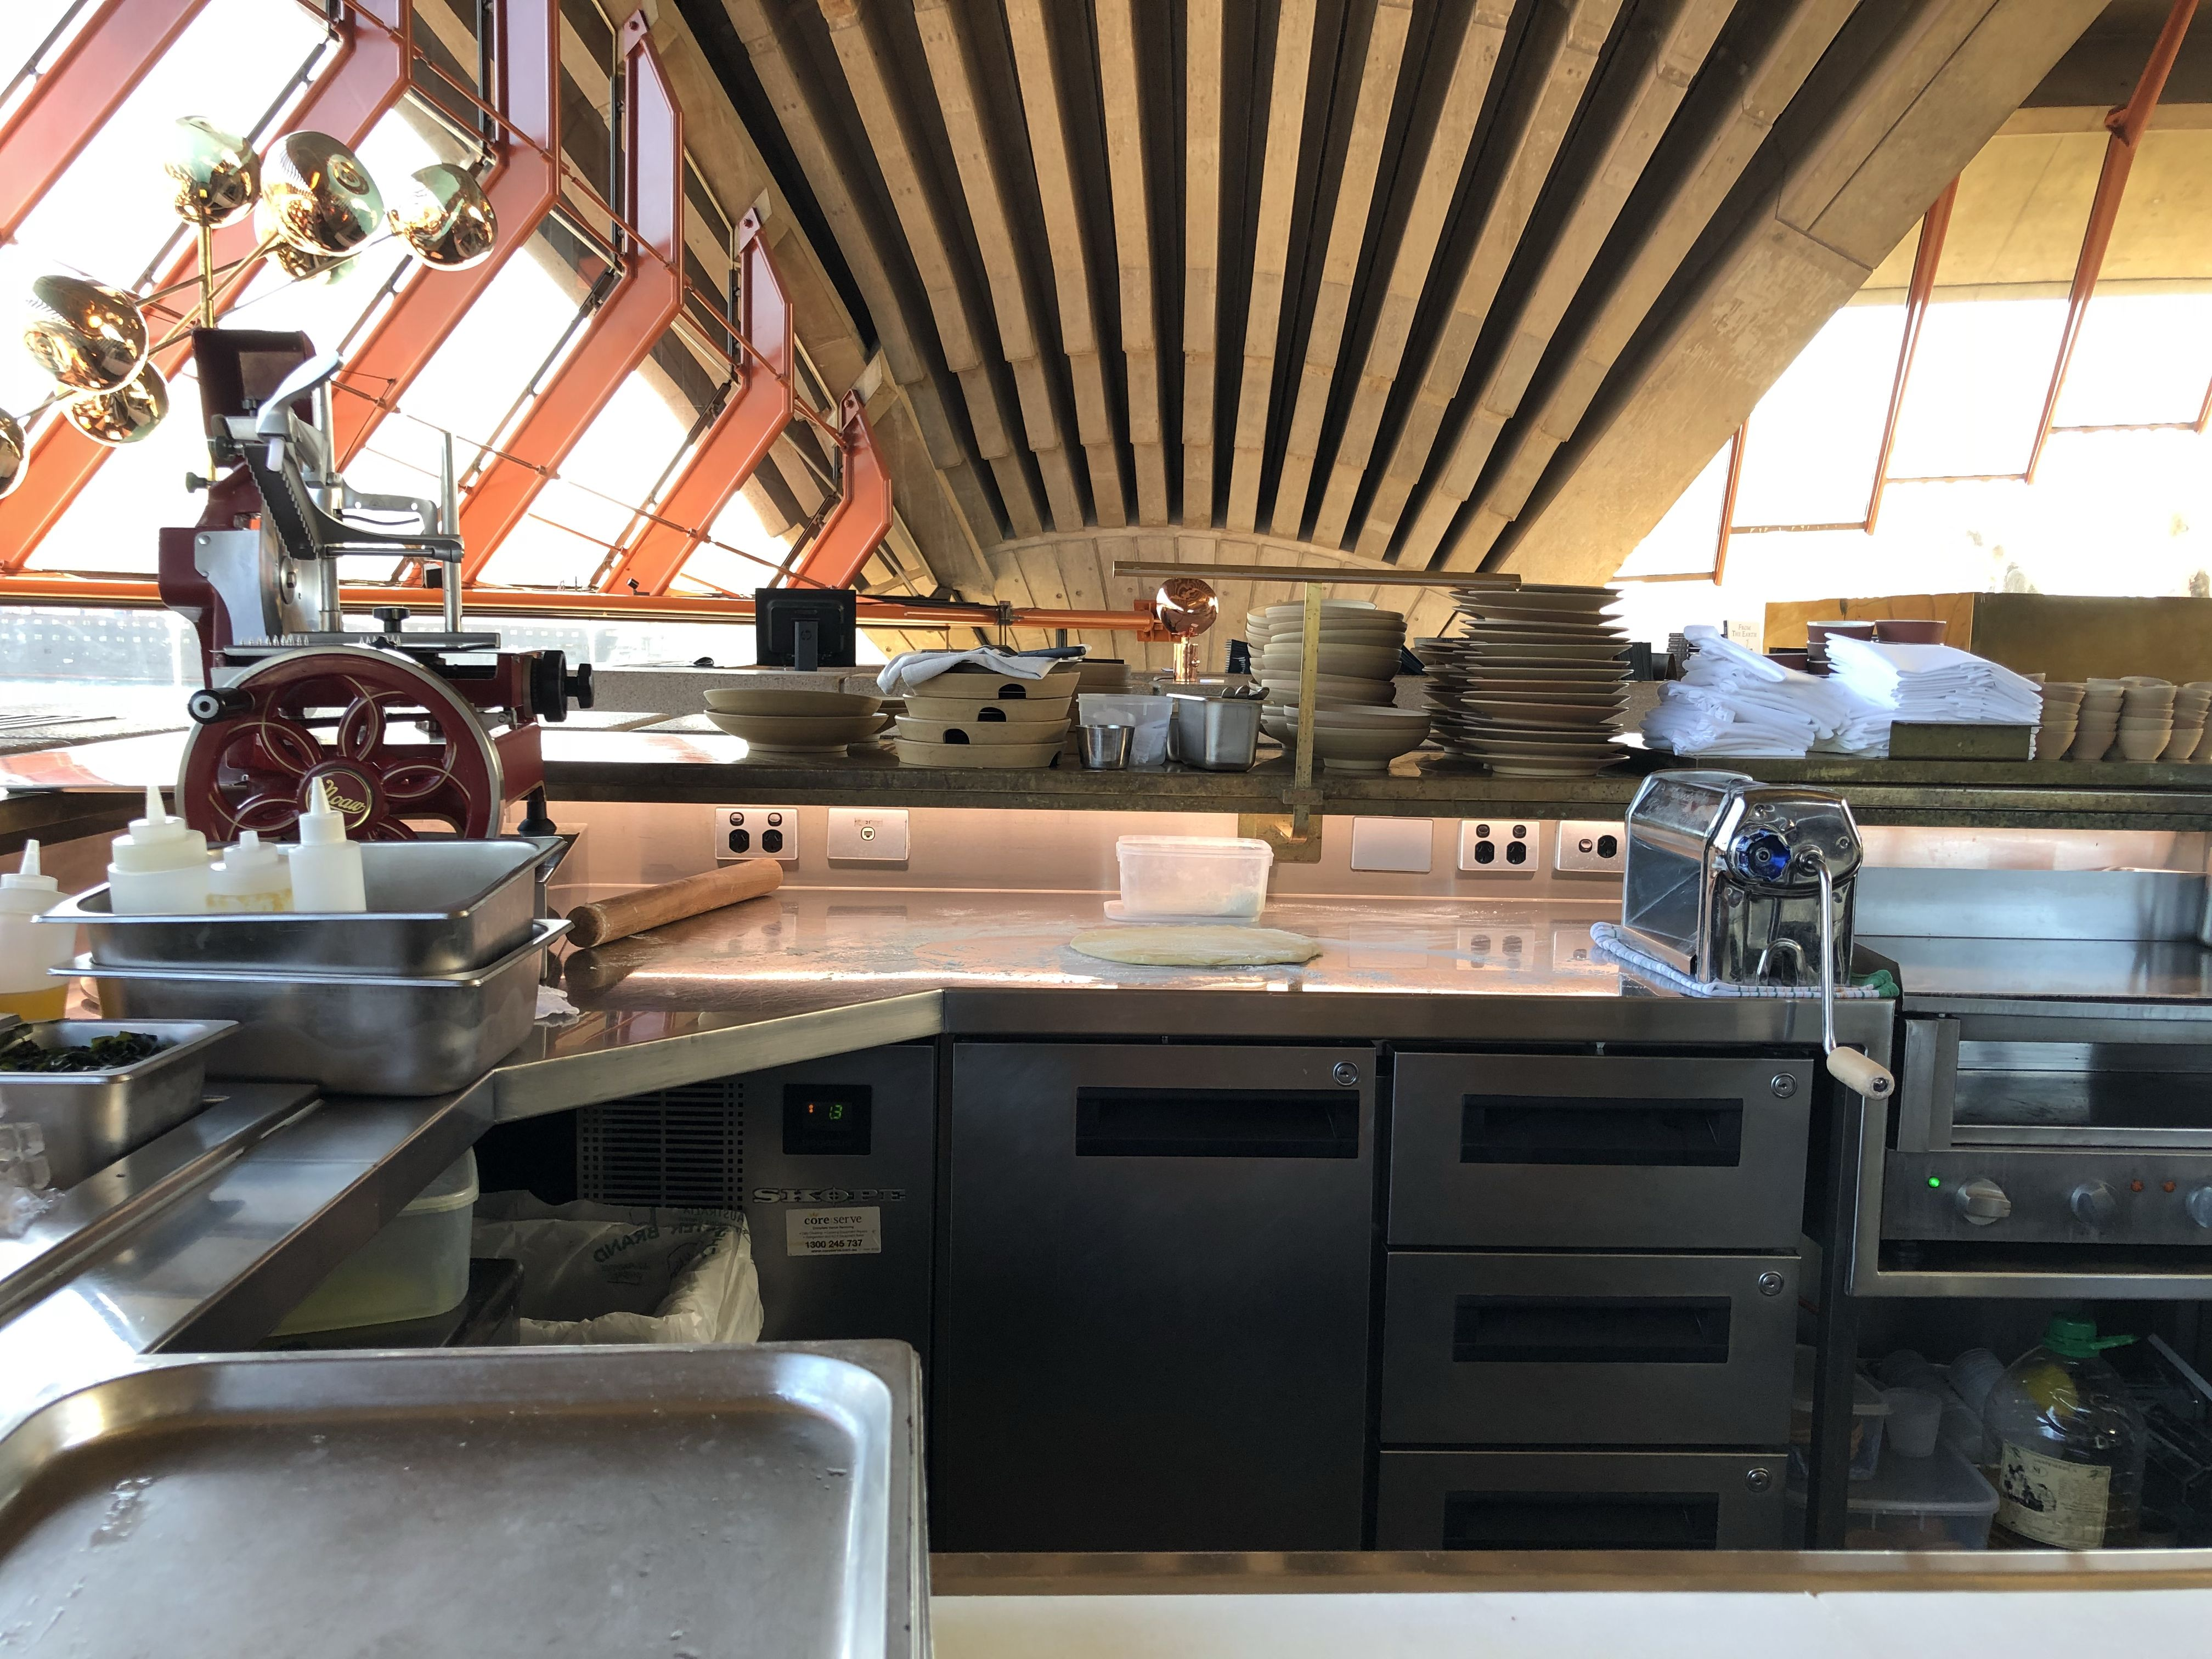 Kitchen Renovations Sydney – The Steps That Need To Be Considered First